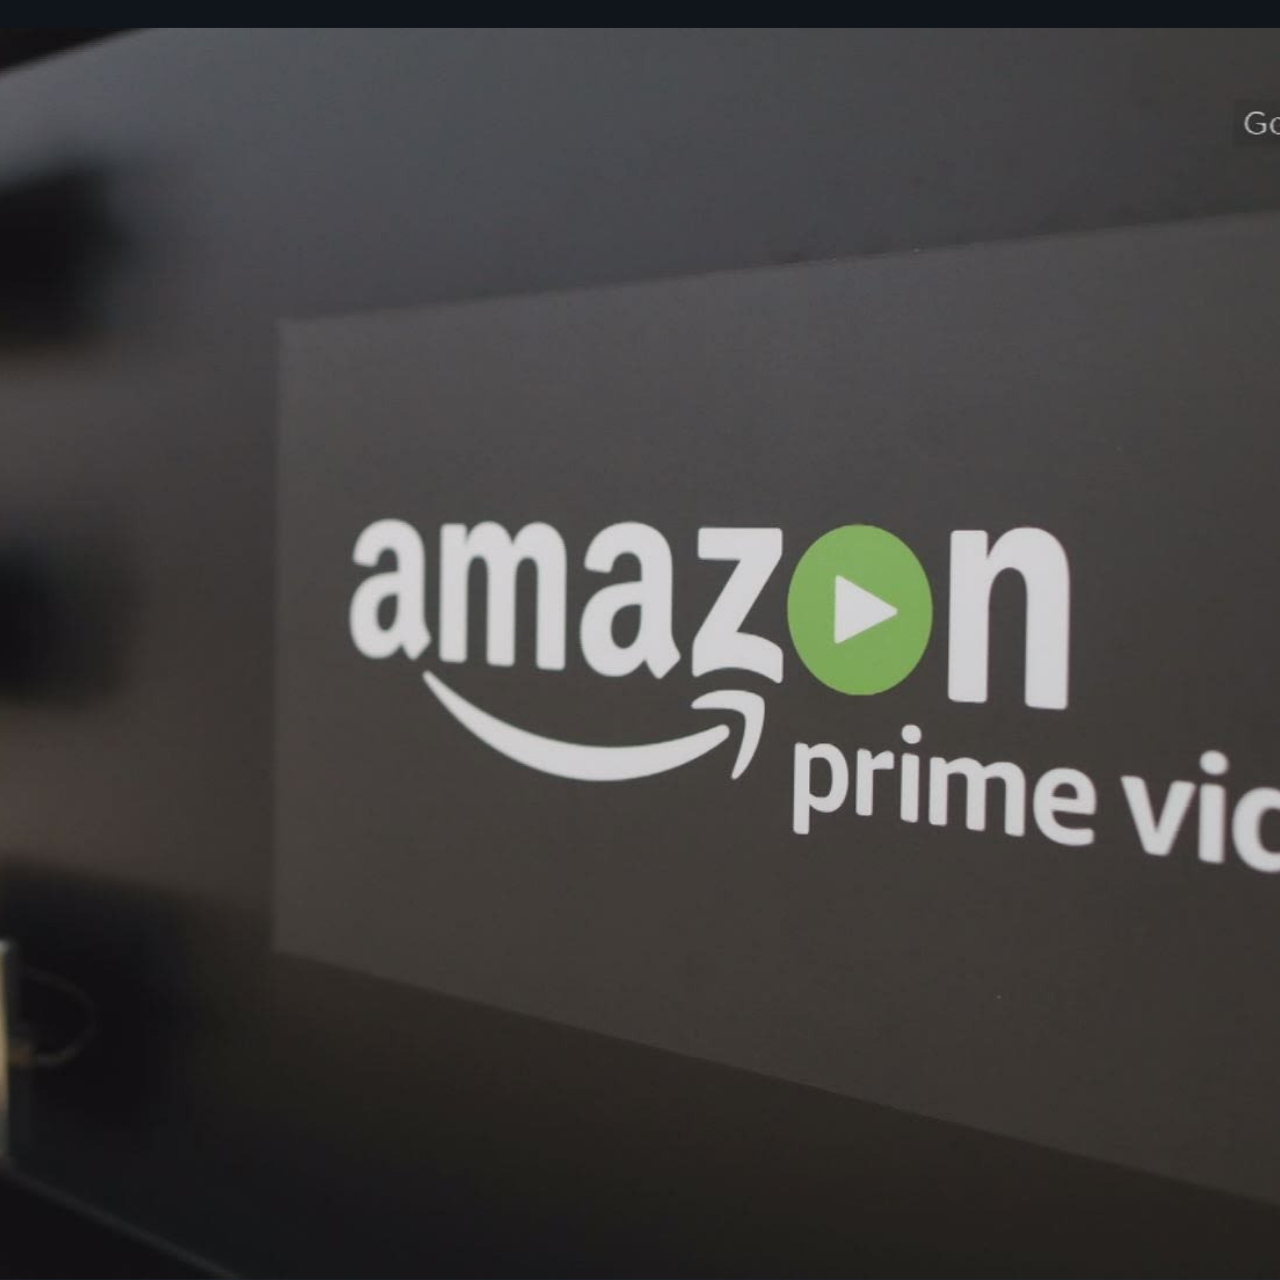 Amazon Tele-Series: Here Are The Benefits Of Being 'Amazon Prime'